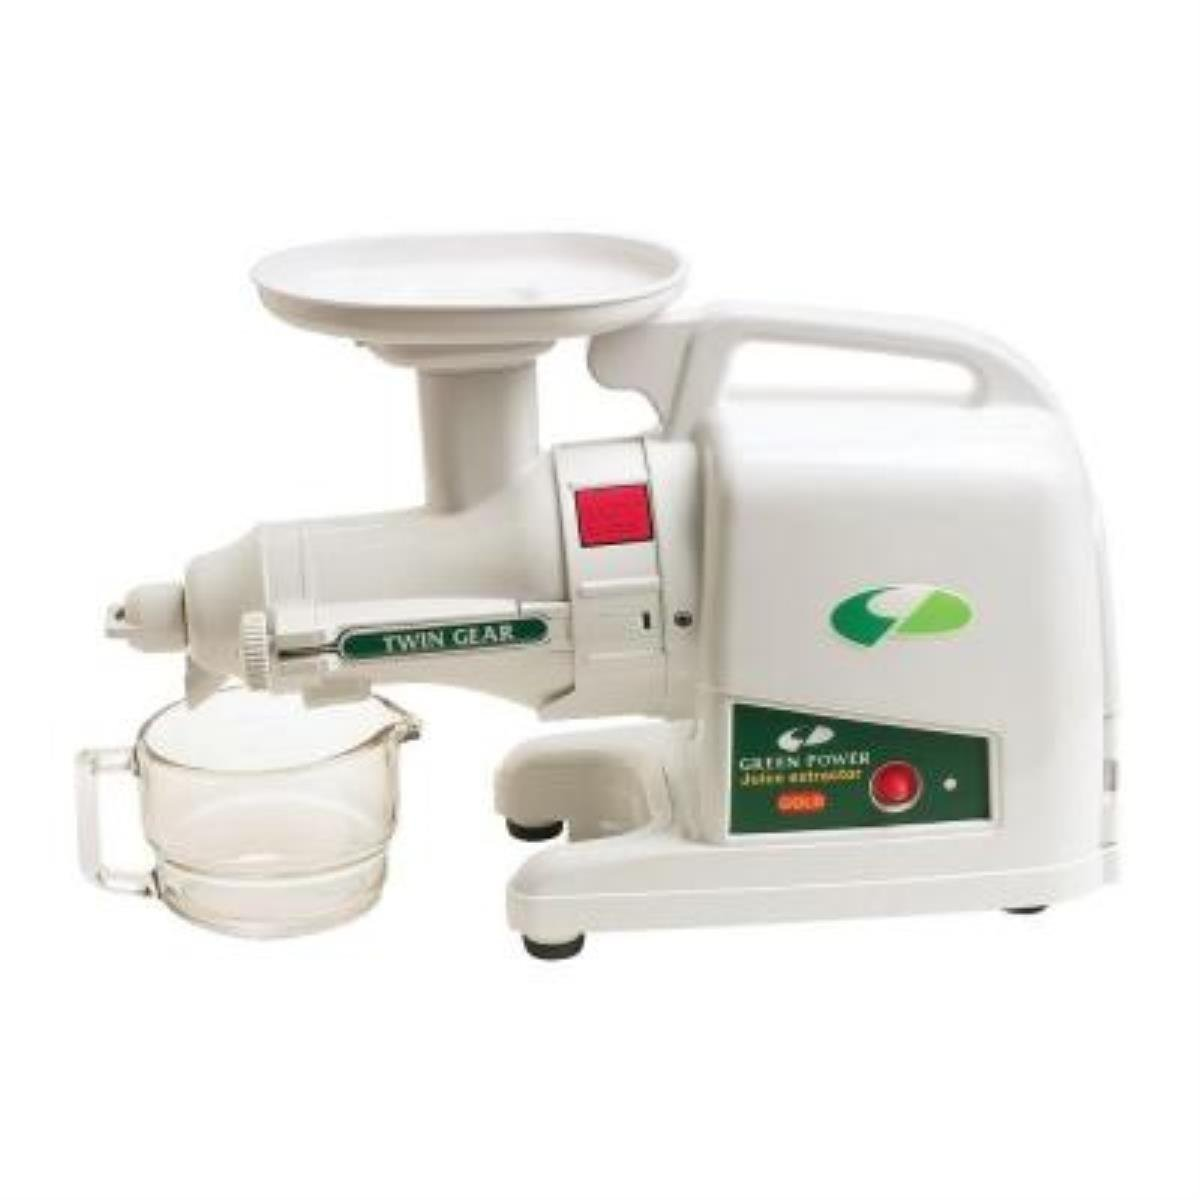 Tribest Green Star GP-E1503-220V Gold Twin Gear Juice Extractor, 220V, NOT FOR USA USE (European Cord)